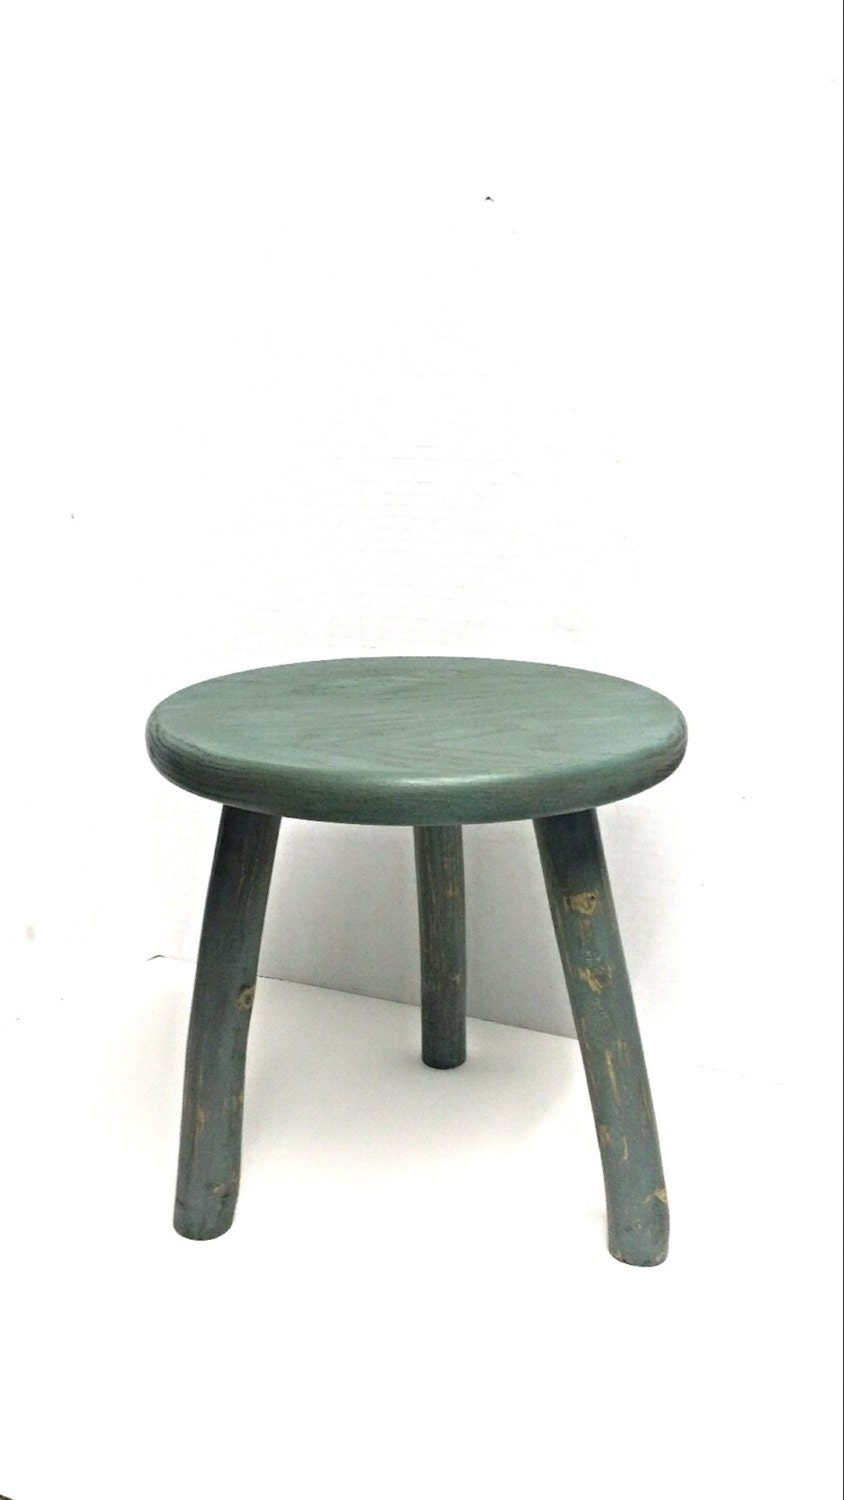 Wooden Stool Milking Stool 3 Legged Stool Painted